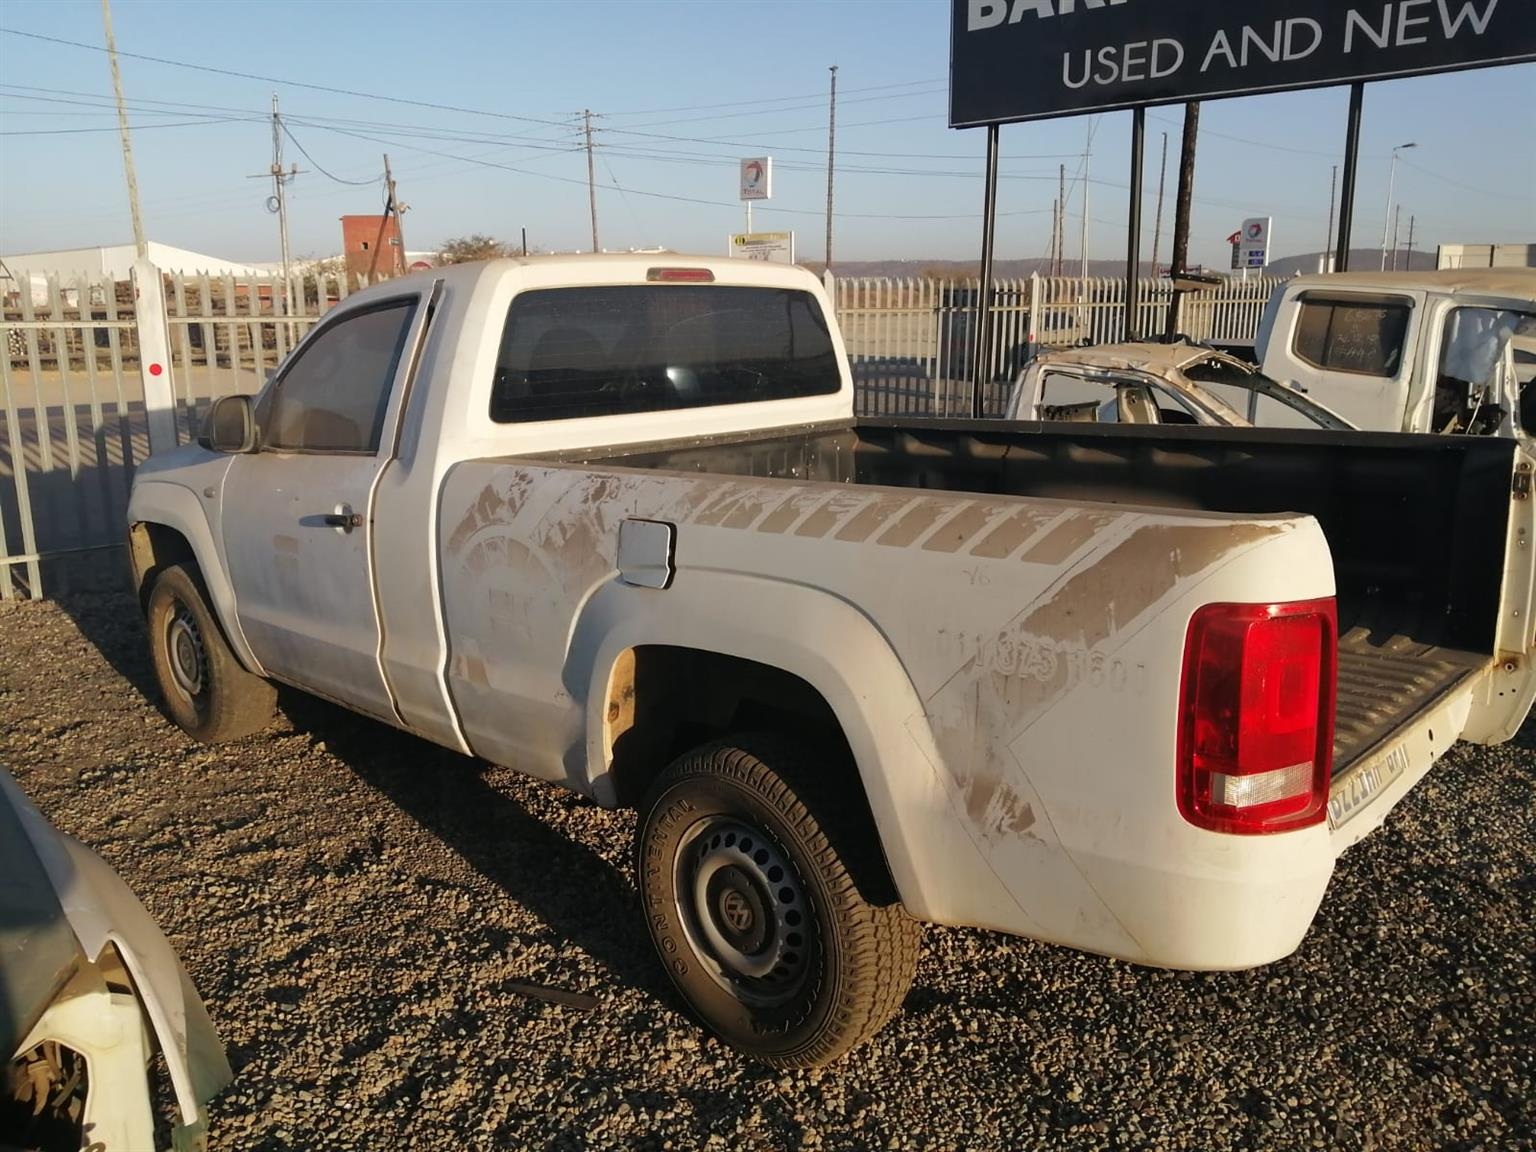 VW Amarok Single Cab stripping for spares